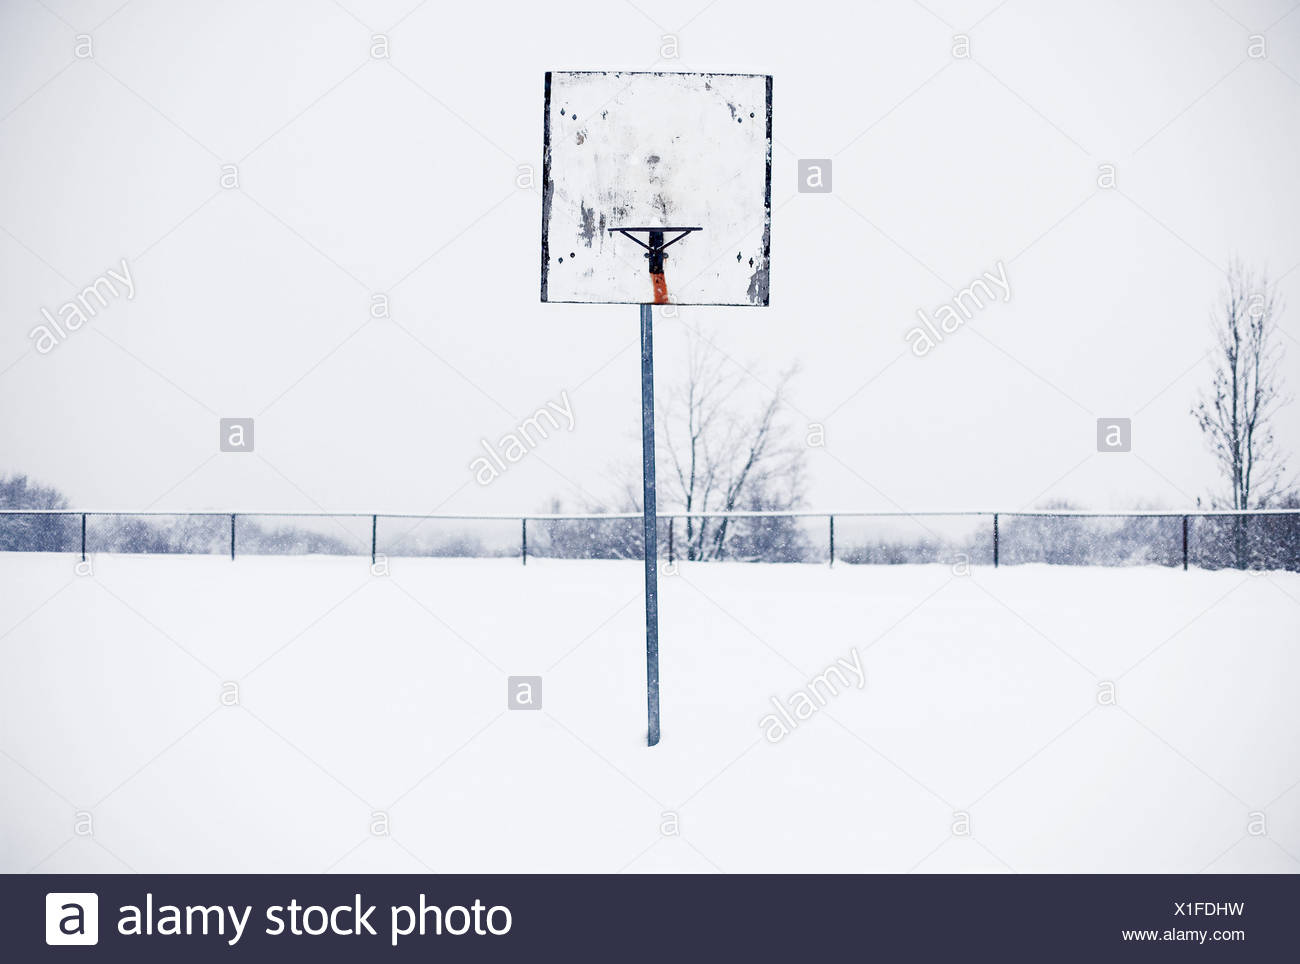 Basketball hoop in snow Stock Photo